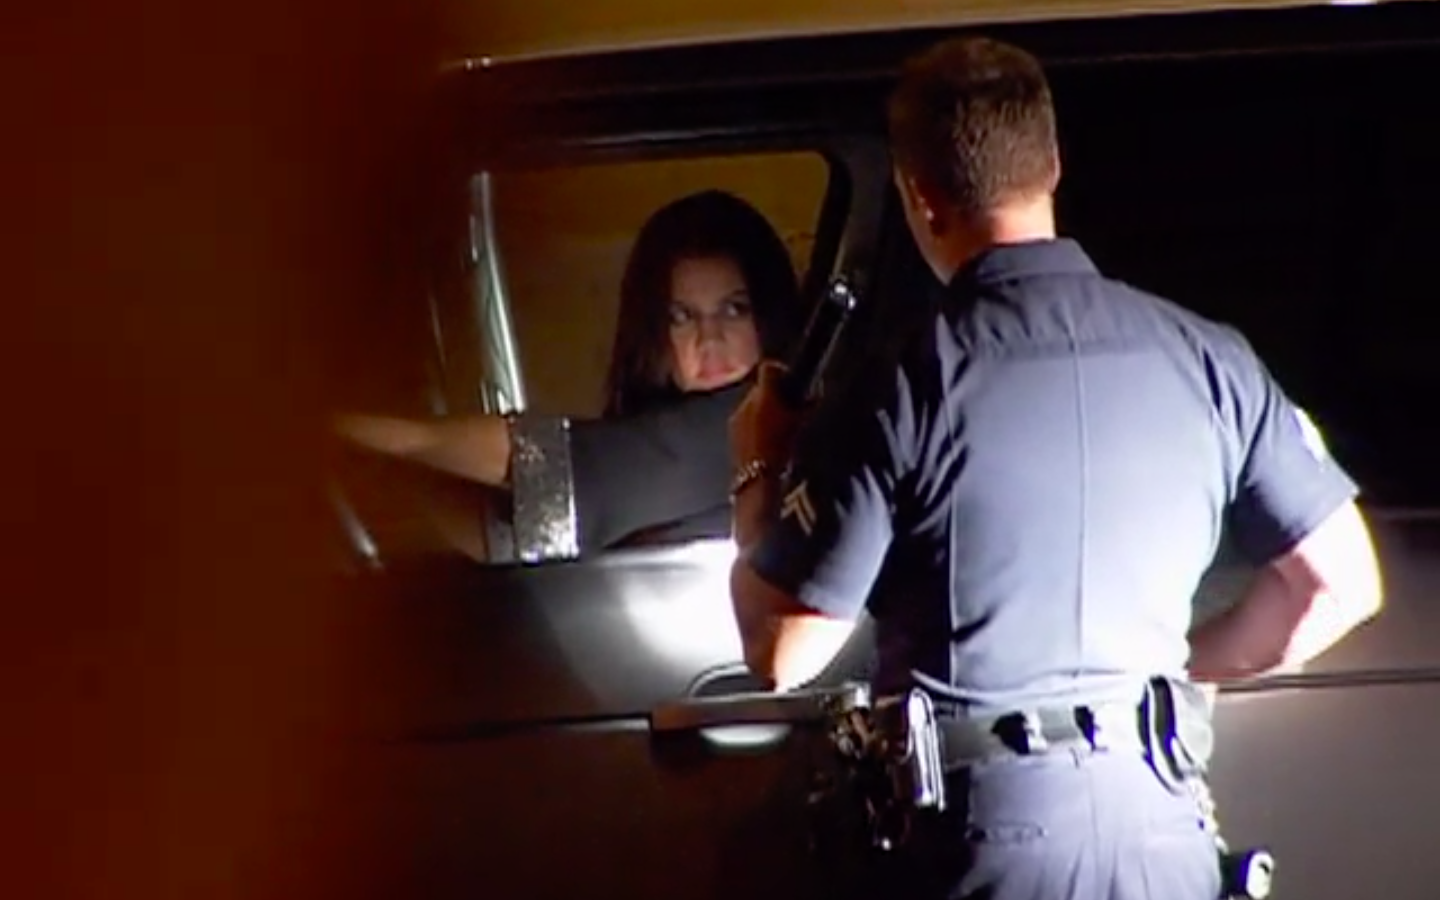 A police officer holds a flashlight up to Khloé in her car